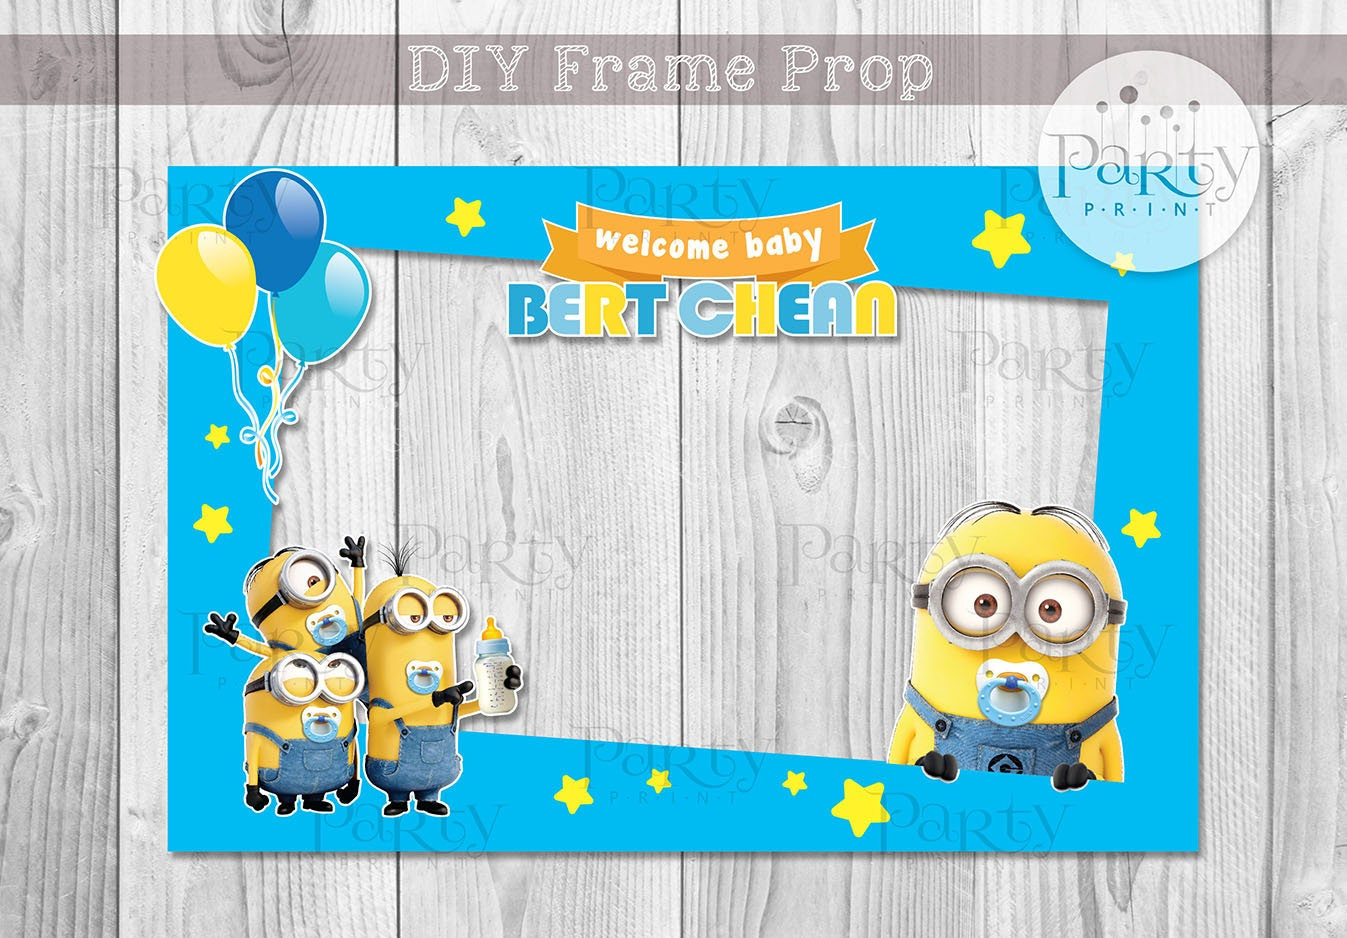 Print it yourself digital copy minions inspired baby shower diy print it yourself digital copy minions inspired baby shower diy photo frame solutioingenieria Images